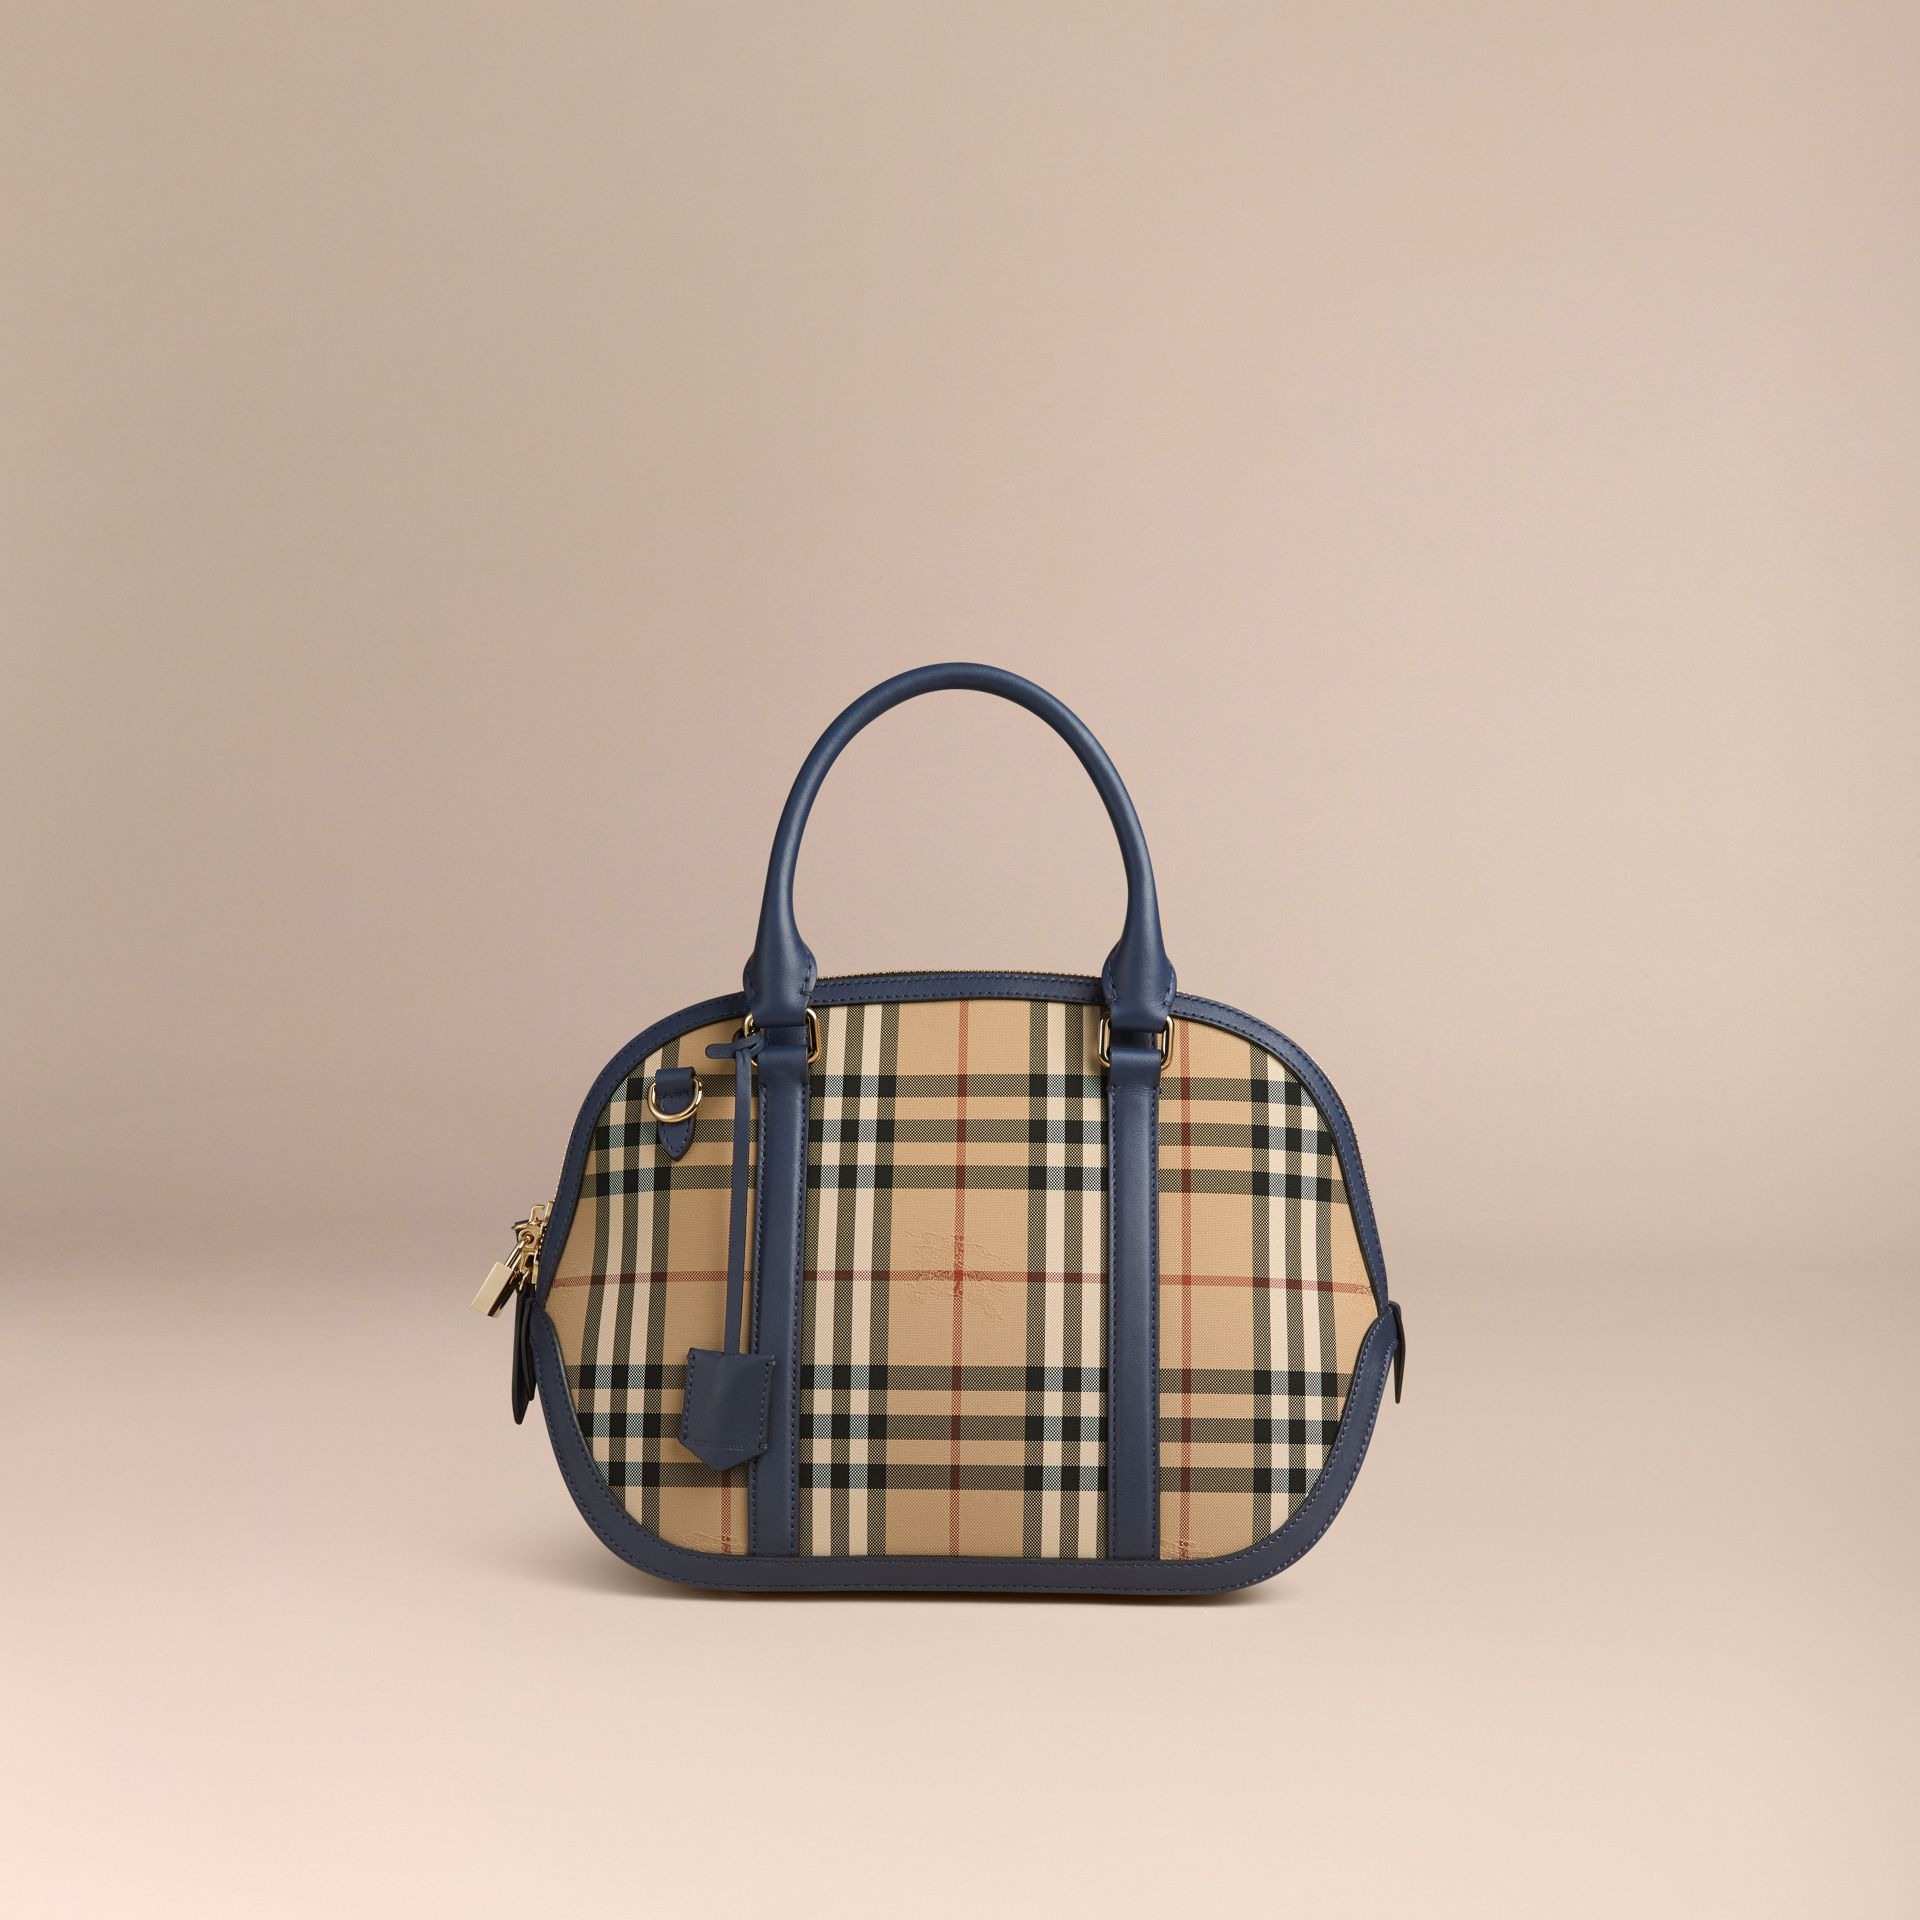 Honey/brilliant navy The Small Orchard in Horseferry Check Honey/brilliant Navy - gallery image 7